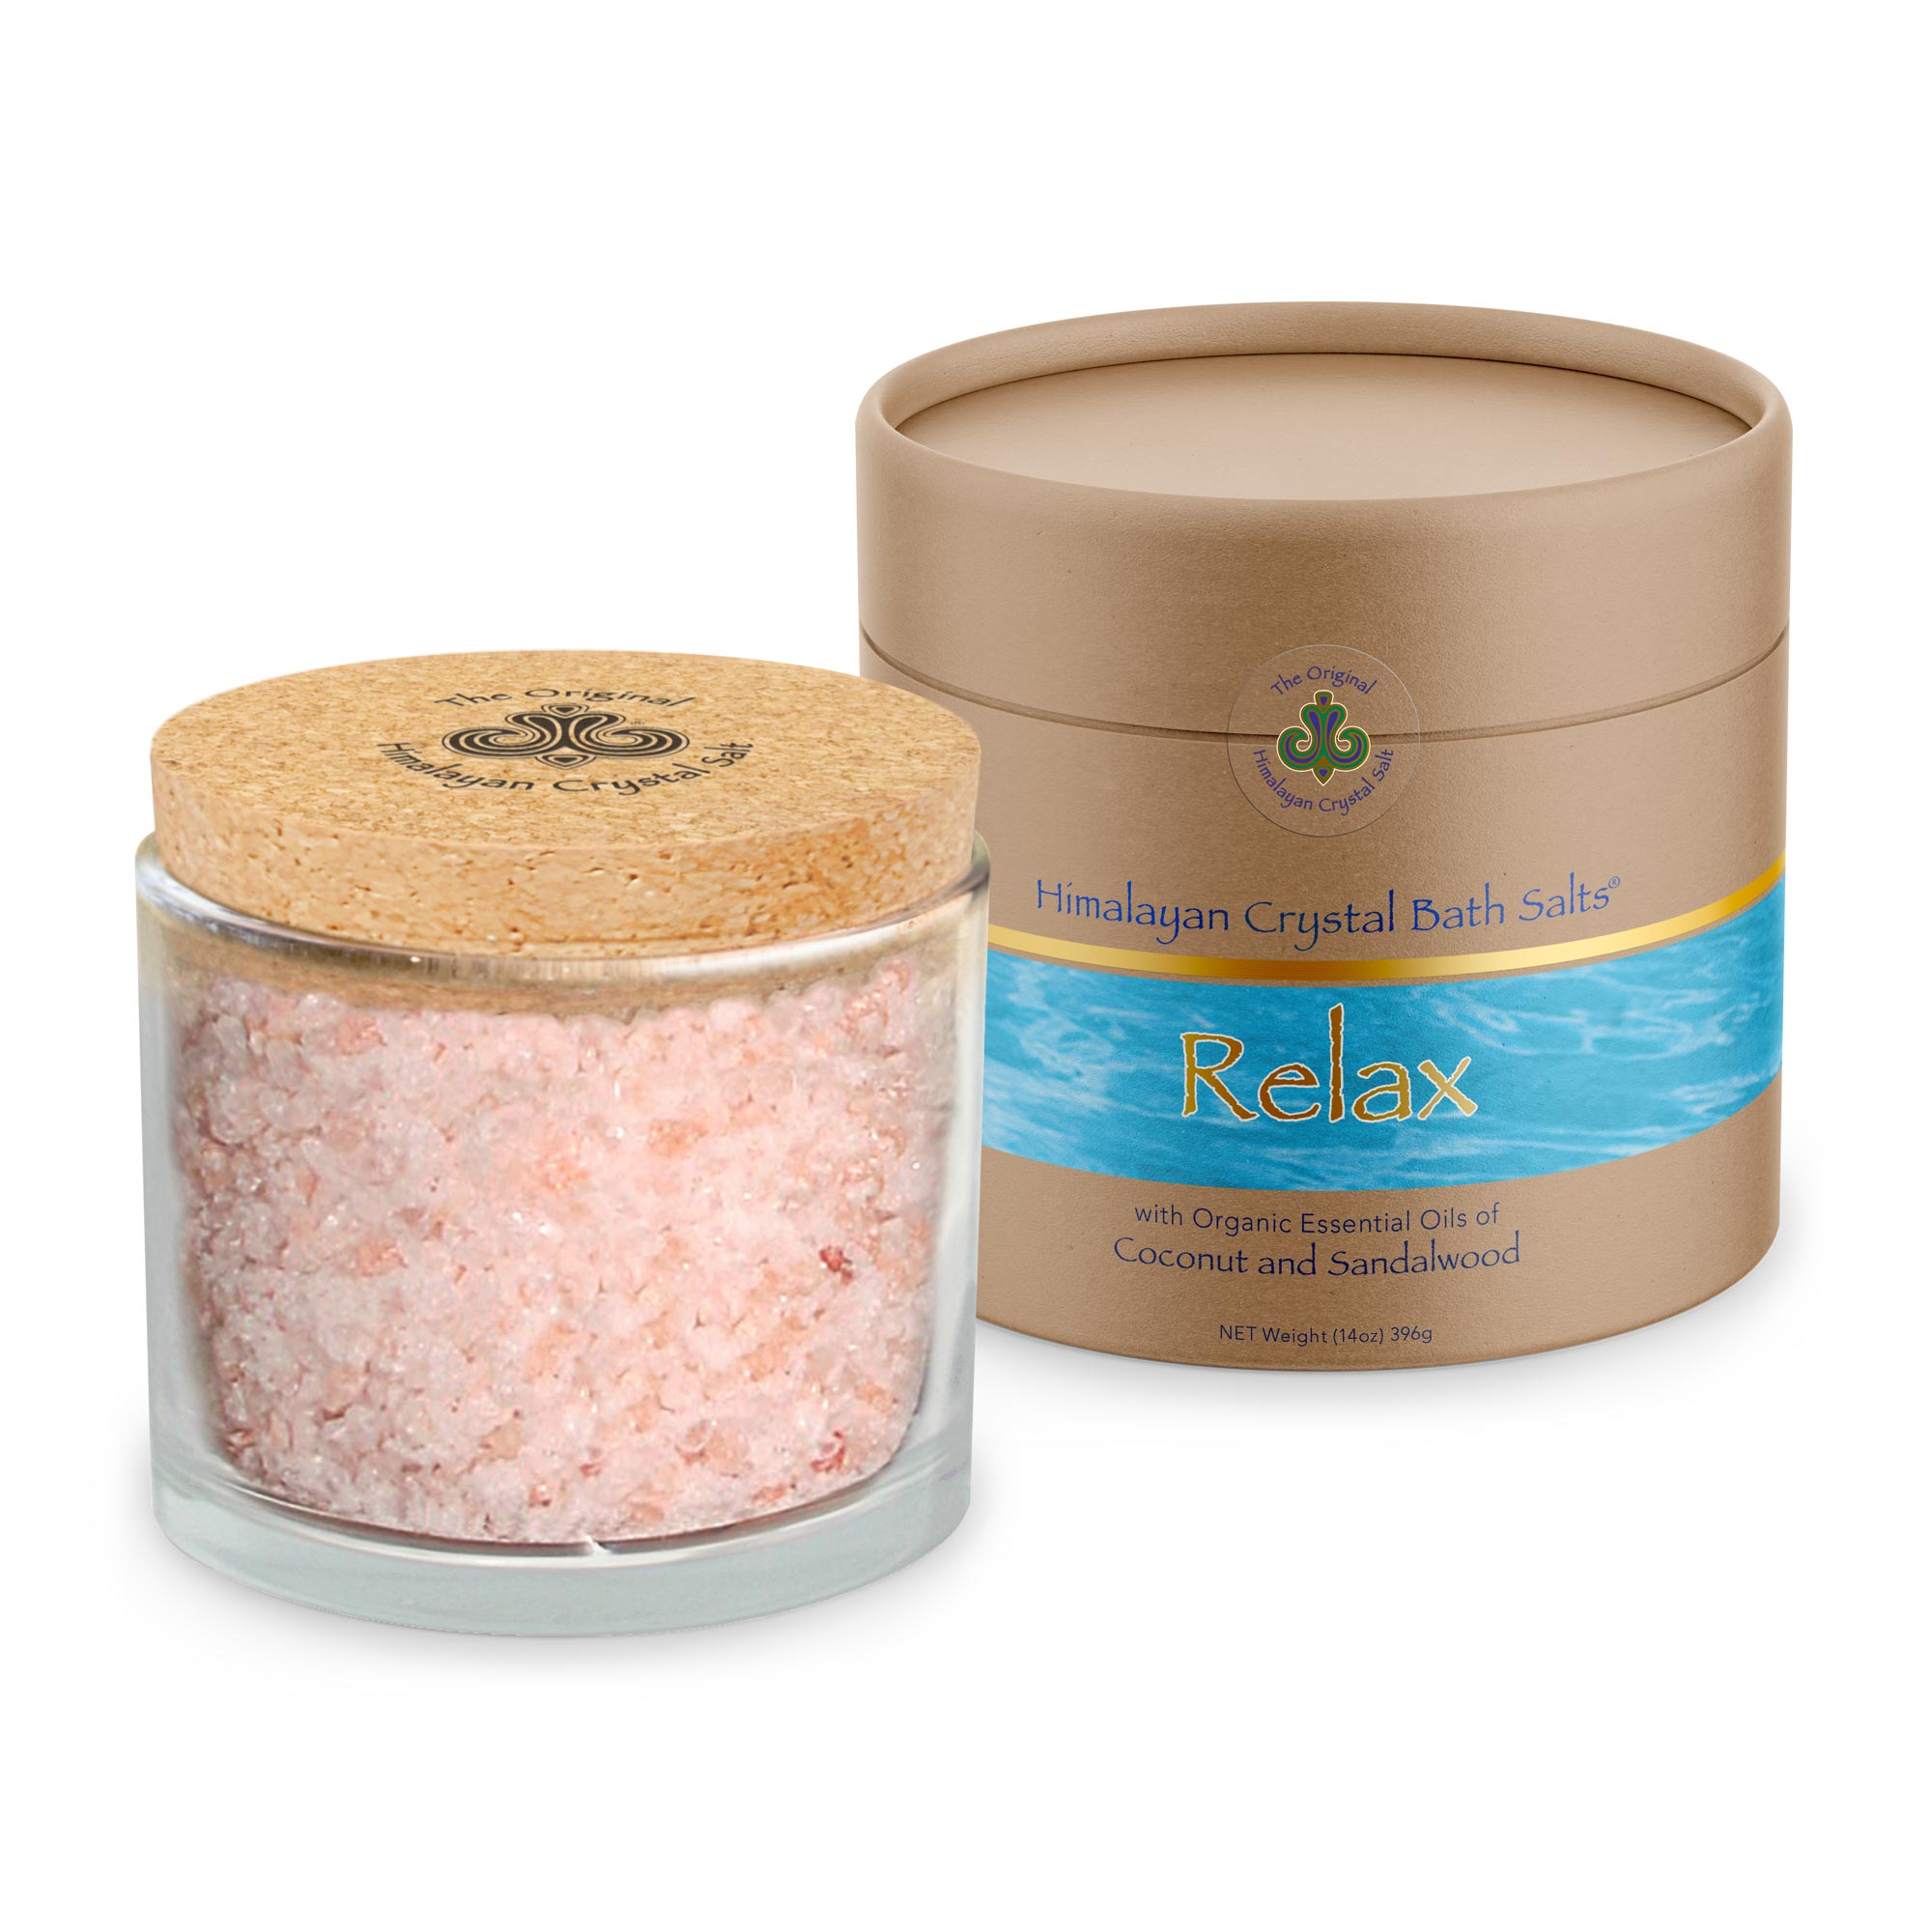 Let go of tension with our therapeutic Relax Bath Salts infused with 100% organic coconut and sandalwood essential oils. Rich with minerals, these bath crystals are perfect for hydrating skin and relaxing your entire body.